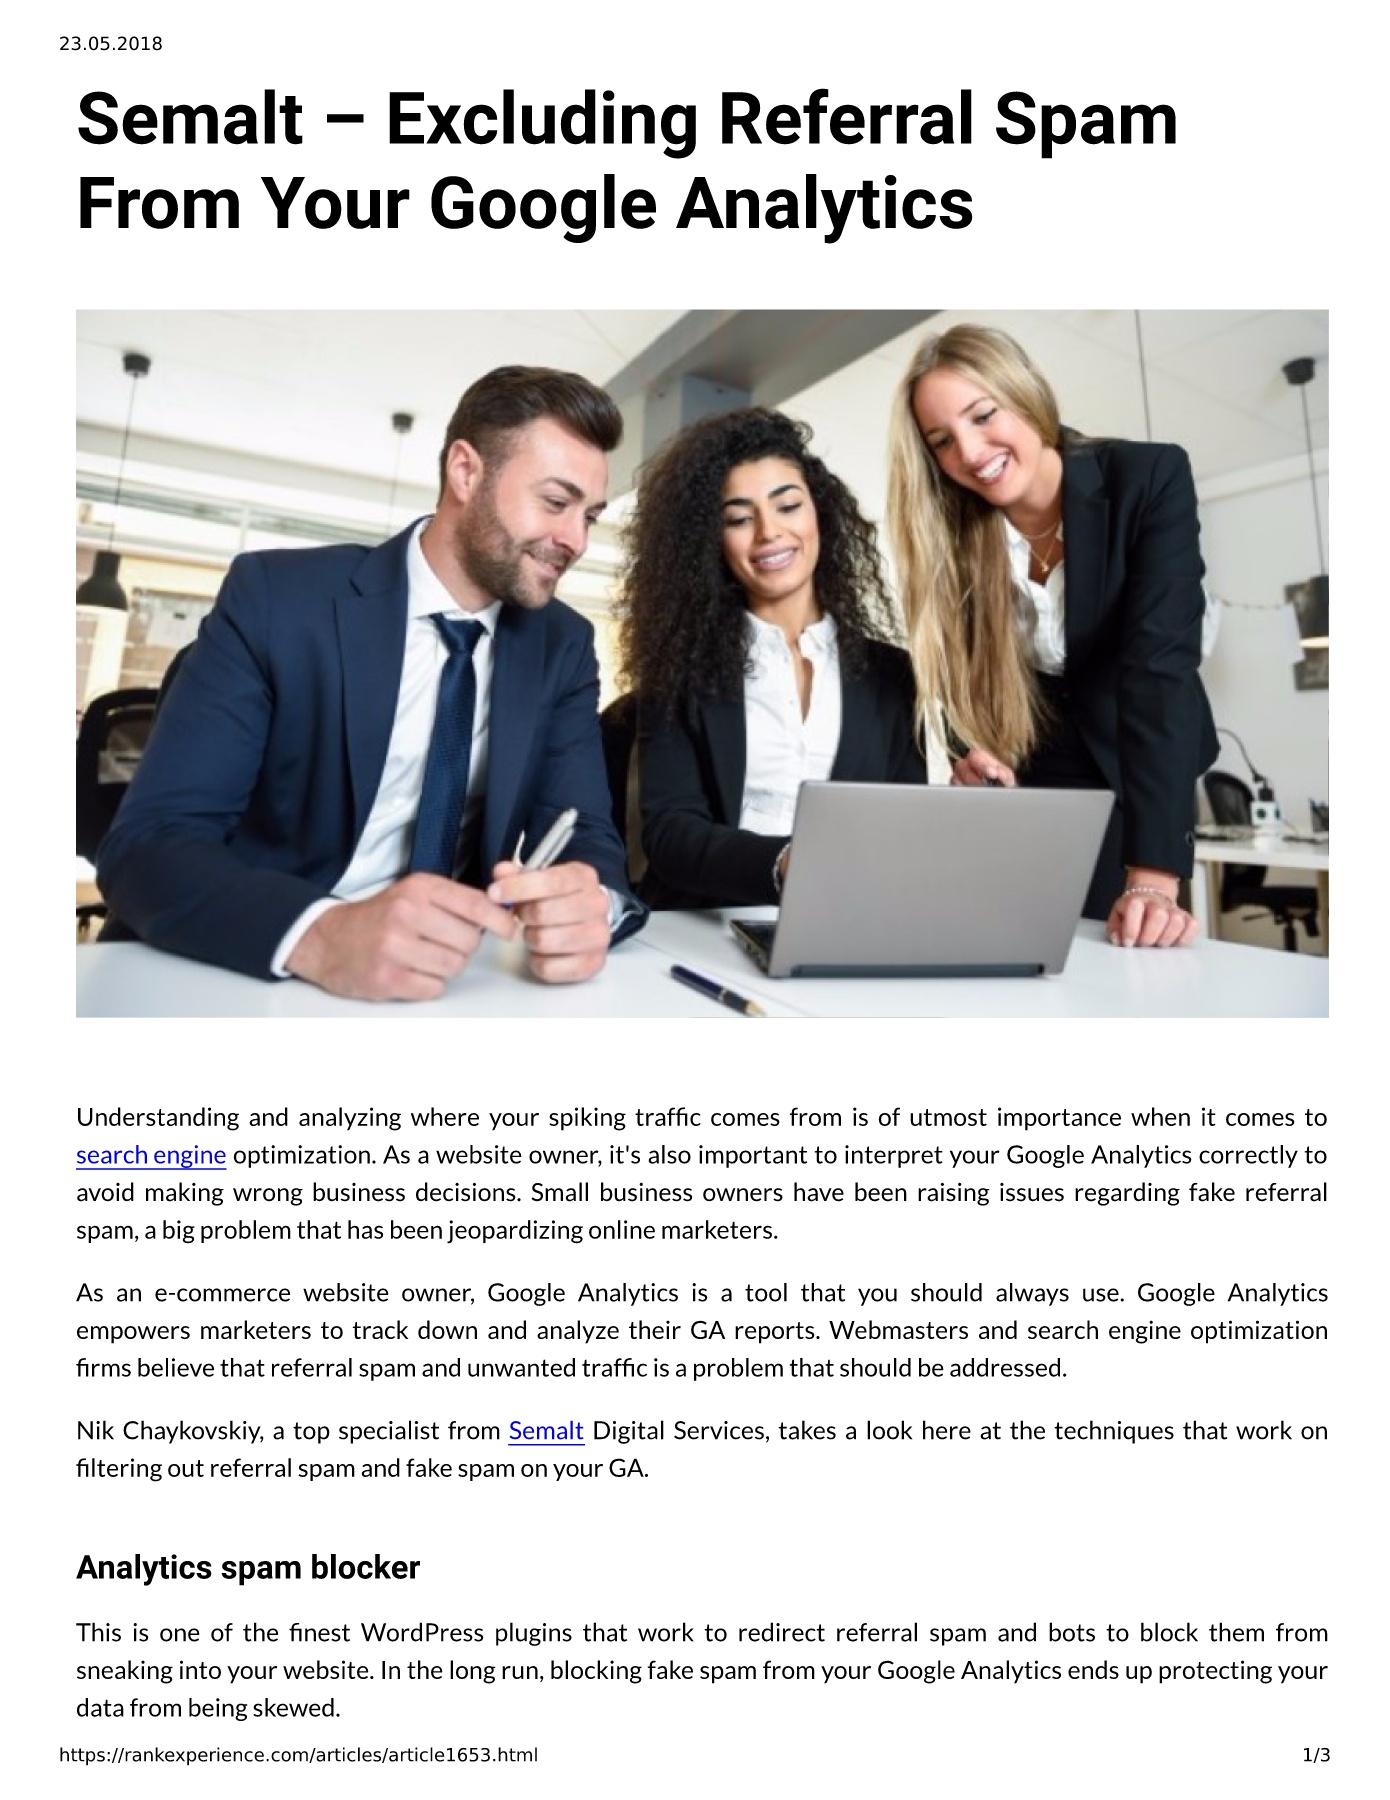 Semalt – Excluding Referral Spam From Your Google Analytics Pages 1